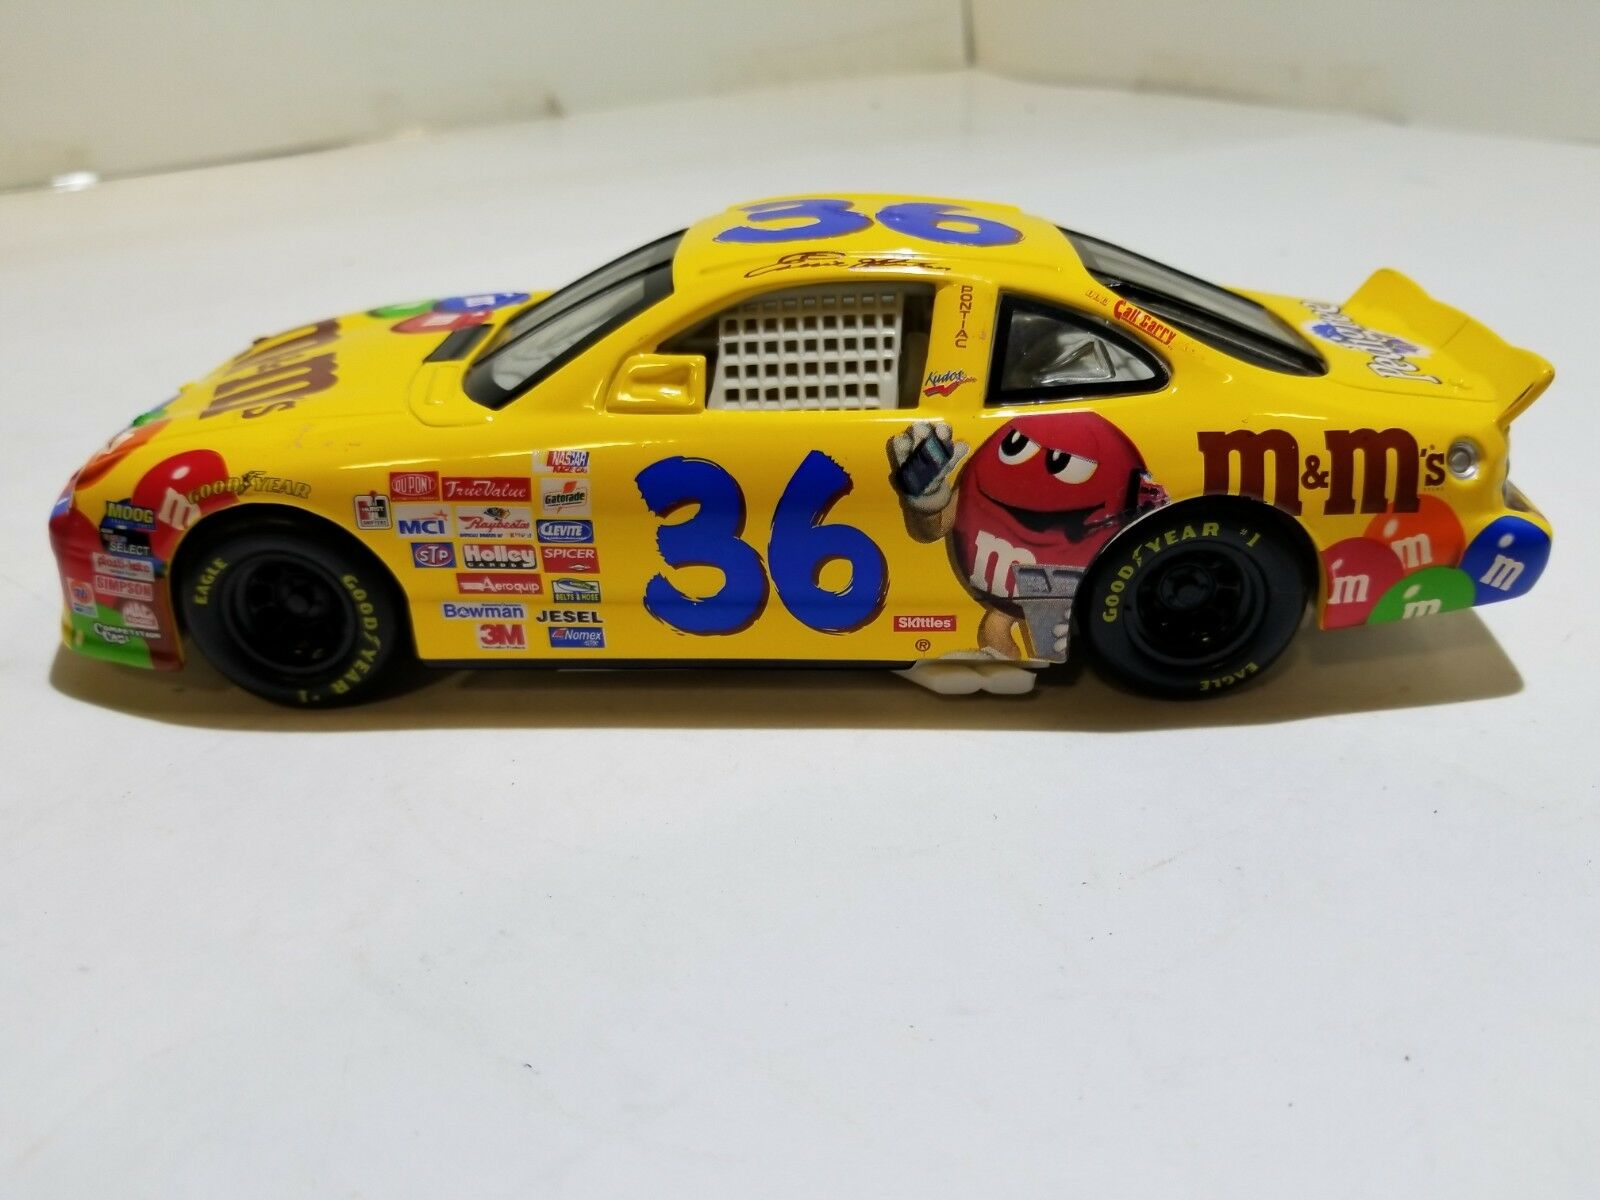 NASCAR 1 24 Ernie Irvans Pontiac Hot Wheels Yellow M&M's Racecar